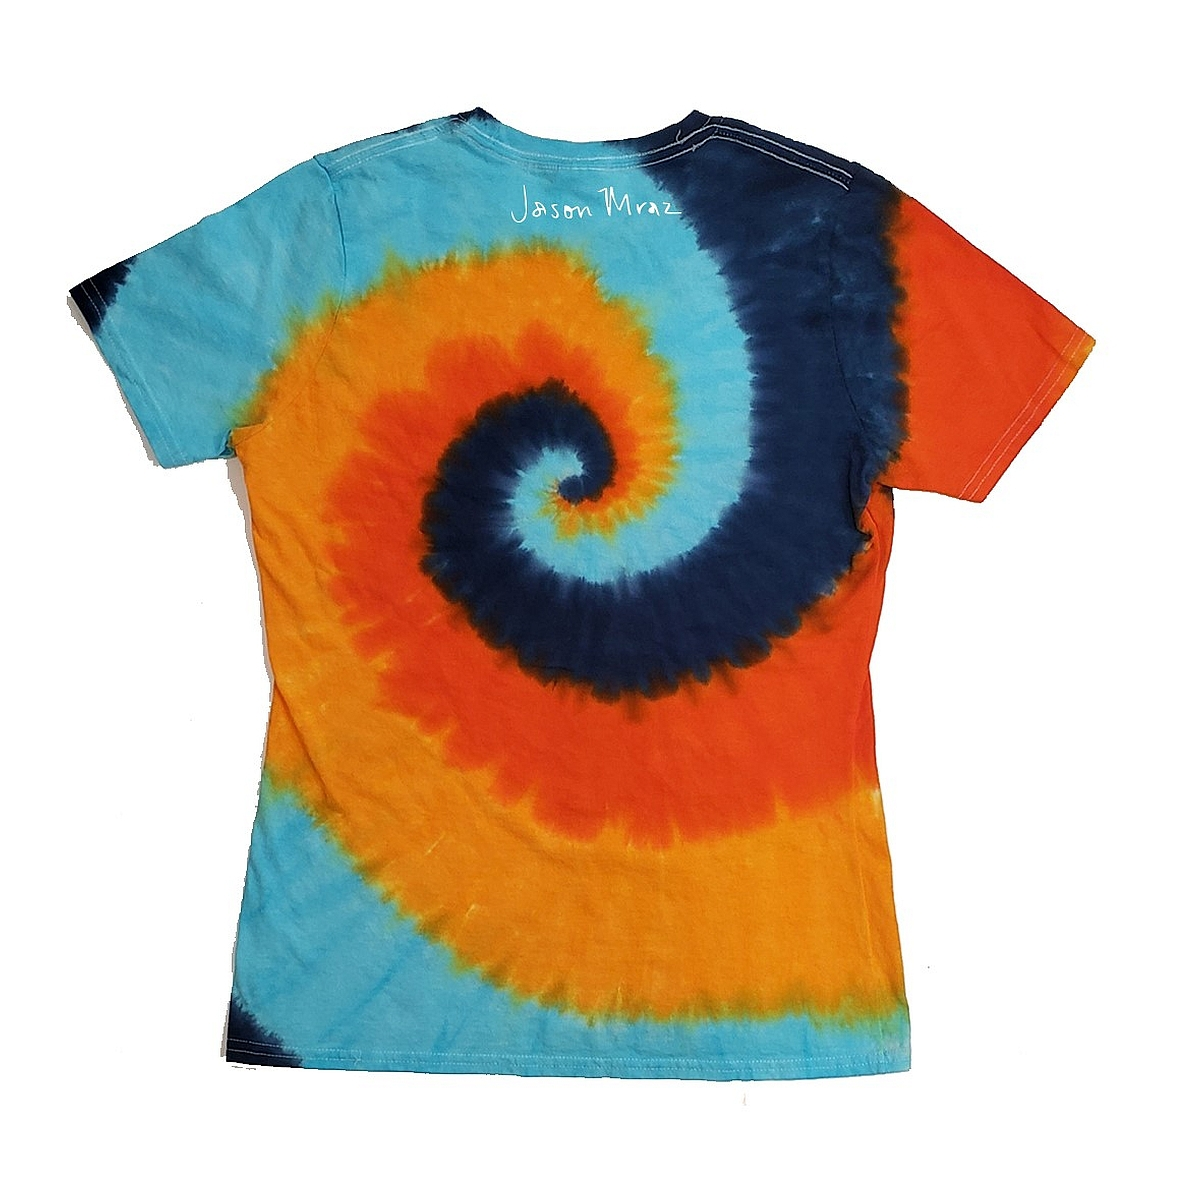 Look for the Good Ladies Tie Dye T-shirt